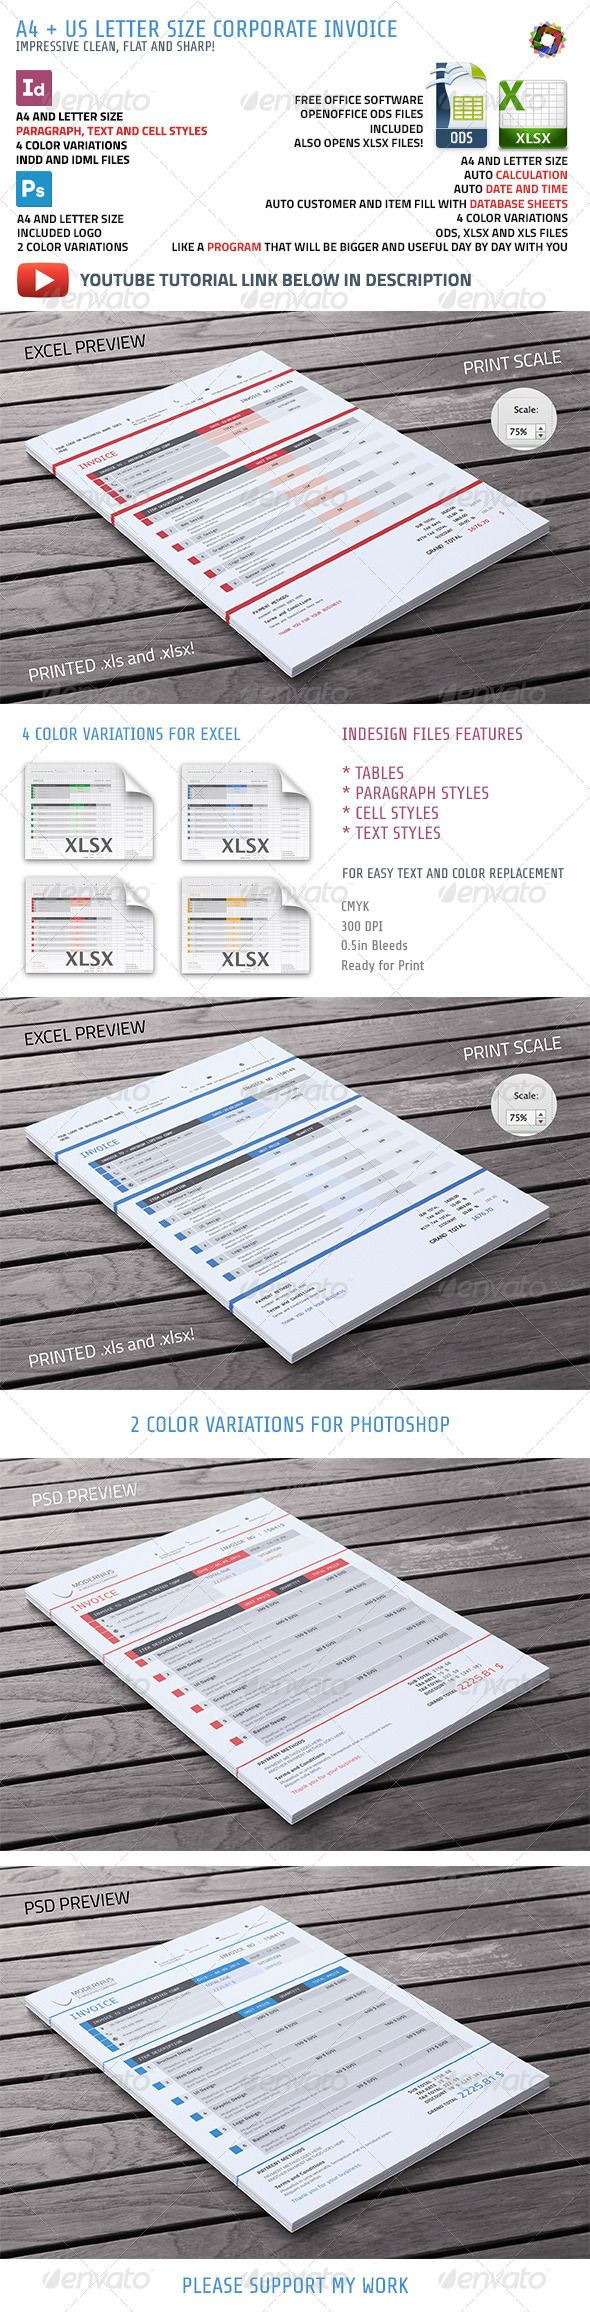 17 best images about invoice design on pinterest | creative, Invoice templates